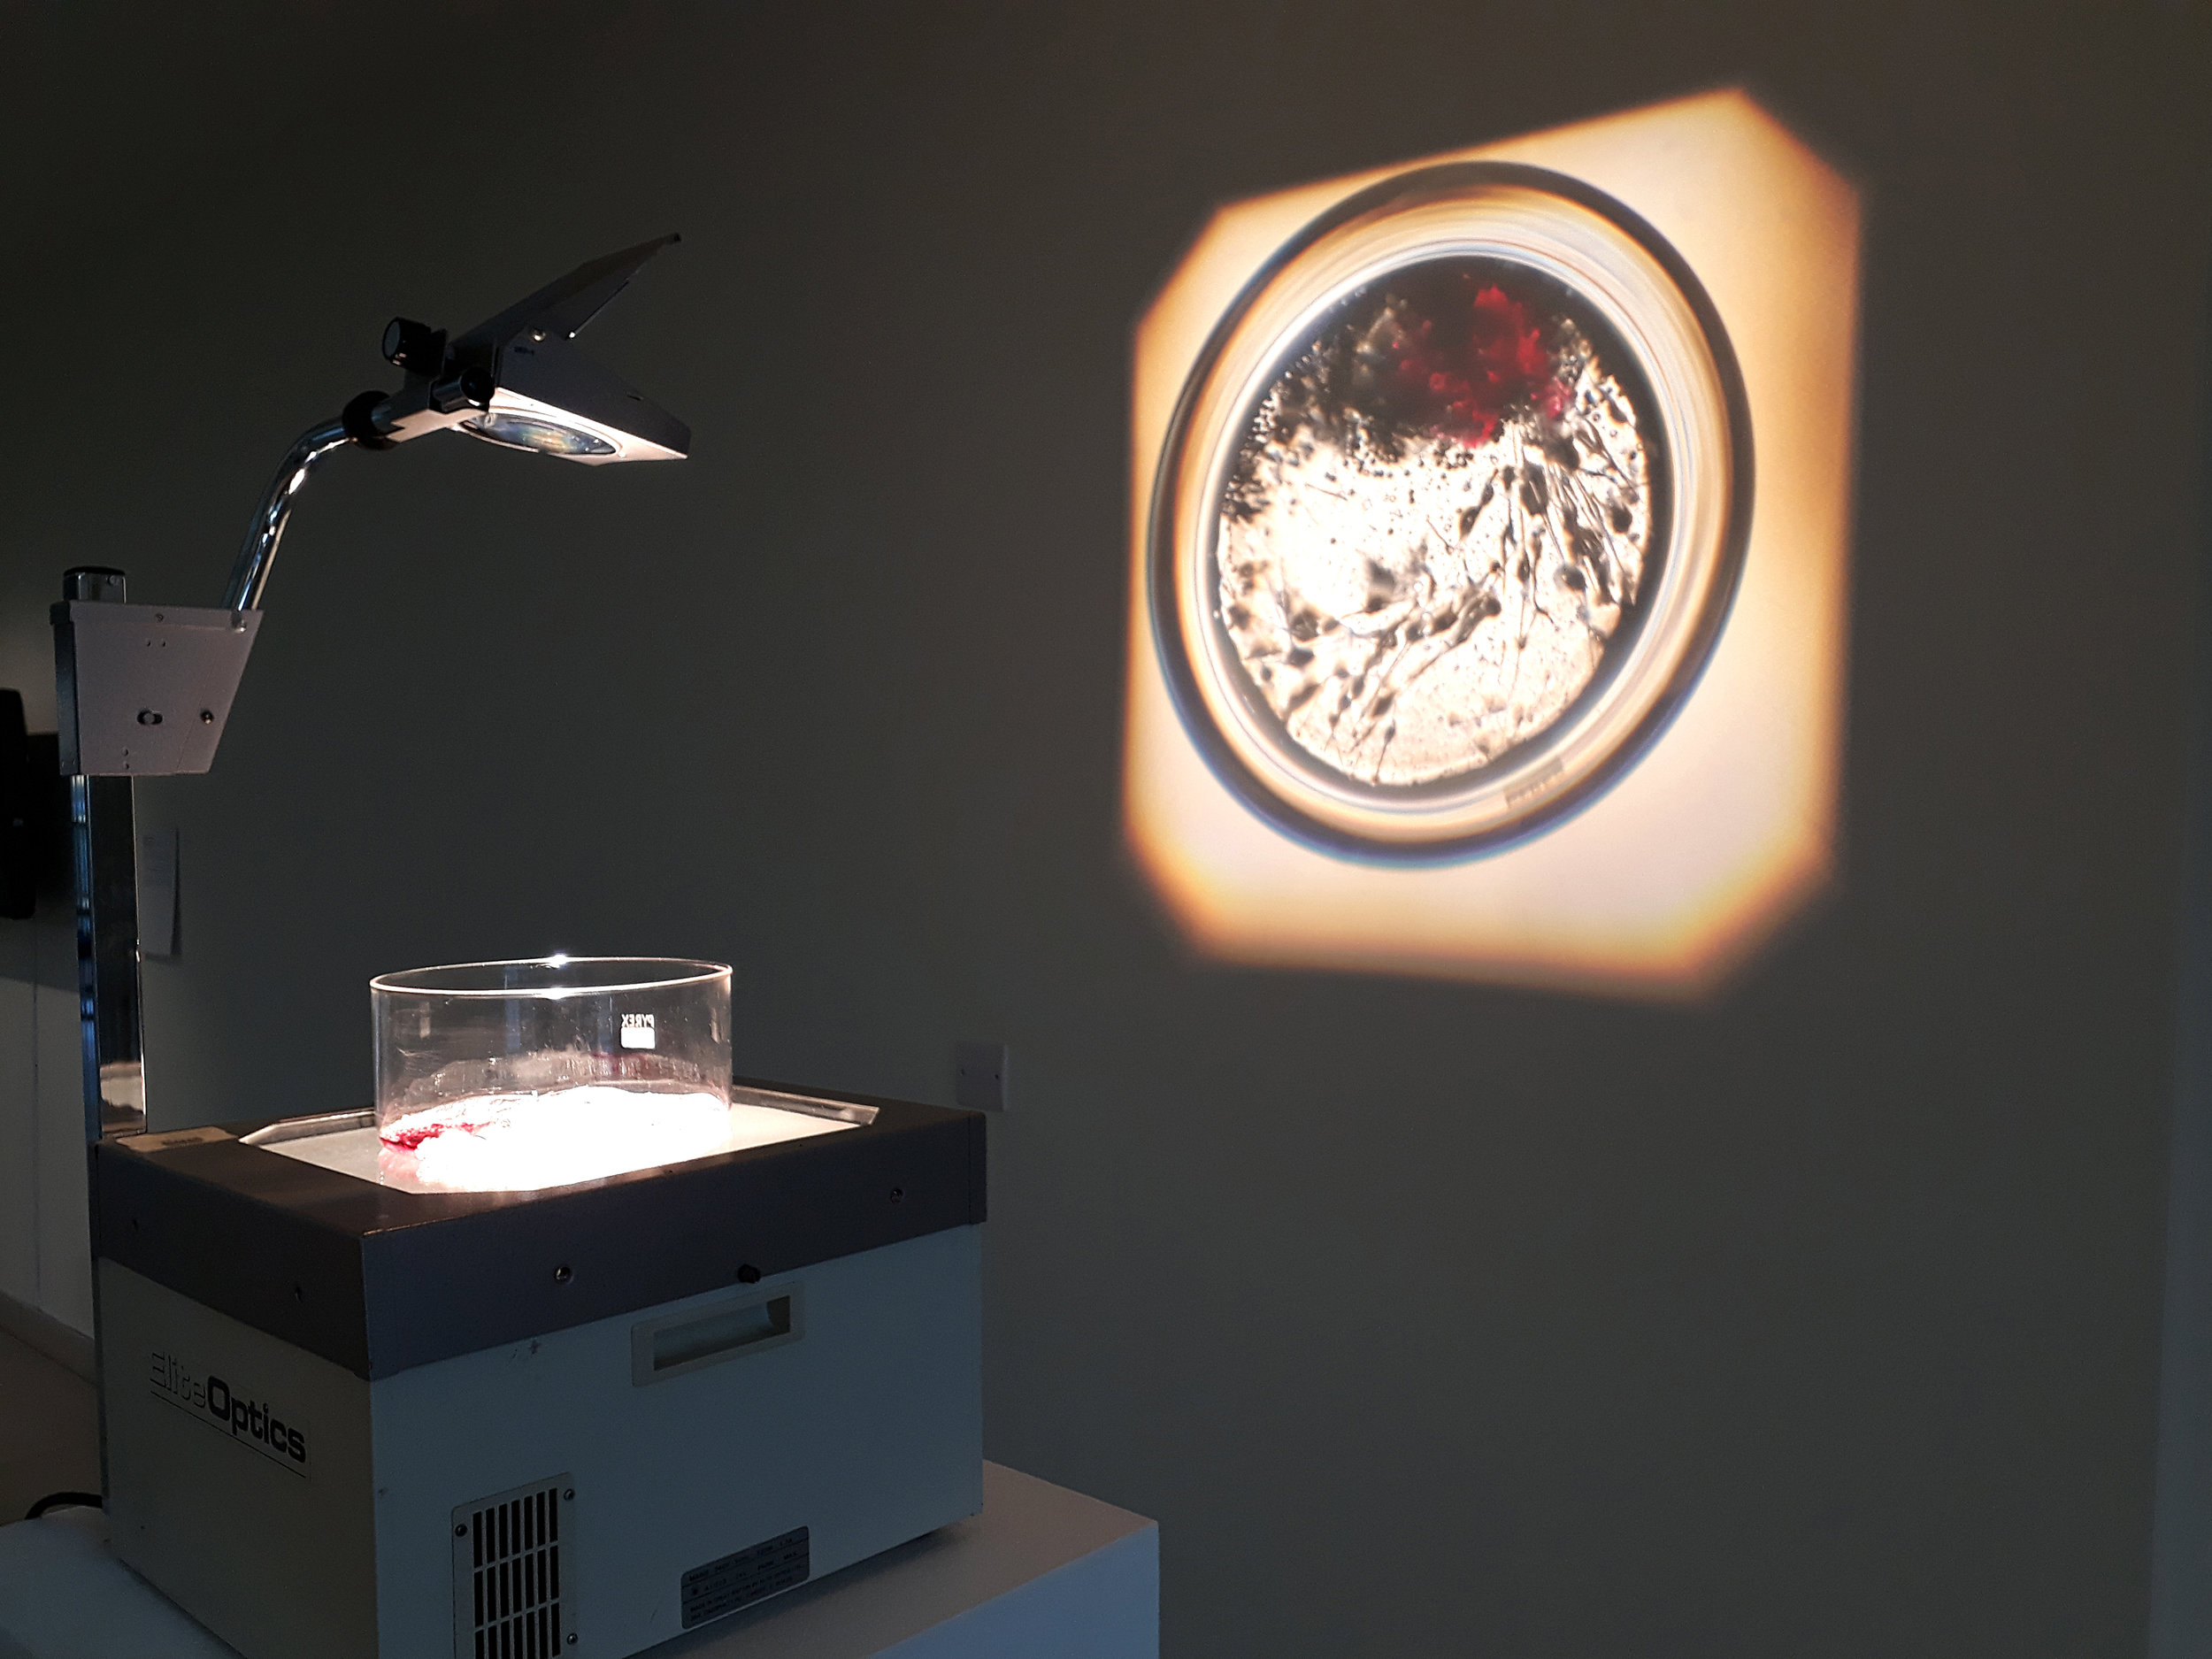 'dermo fibroblast, in vitro', 2018 installation by Charlie Murphy at Dundee's Lifespace gallery Mixed media, OHP